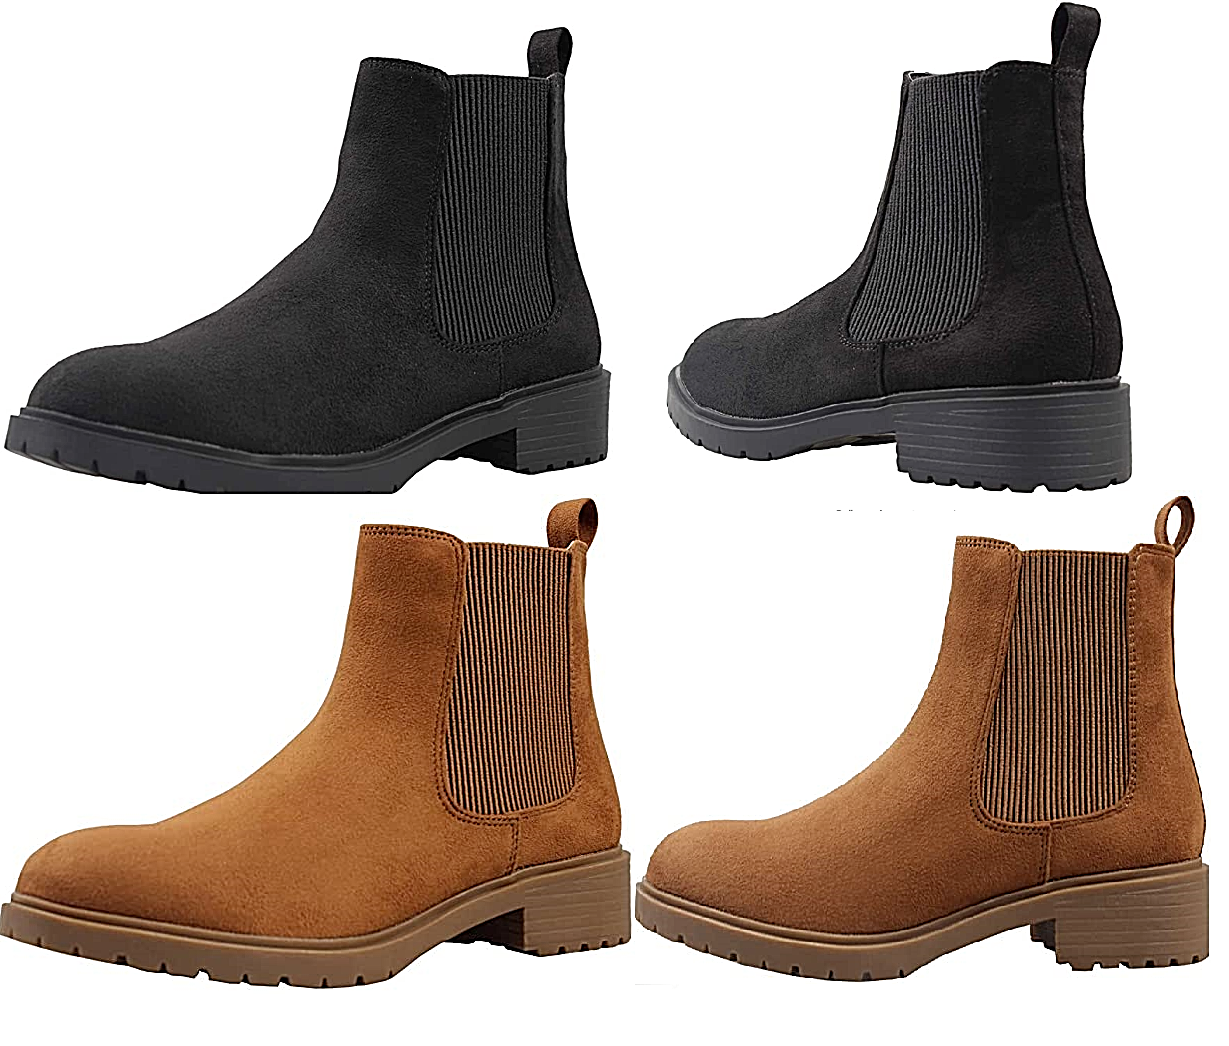 Suede Chelsea Women Boots Hight Quality Elasticated side Stylish Non Slippery Boots